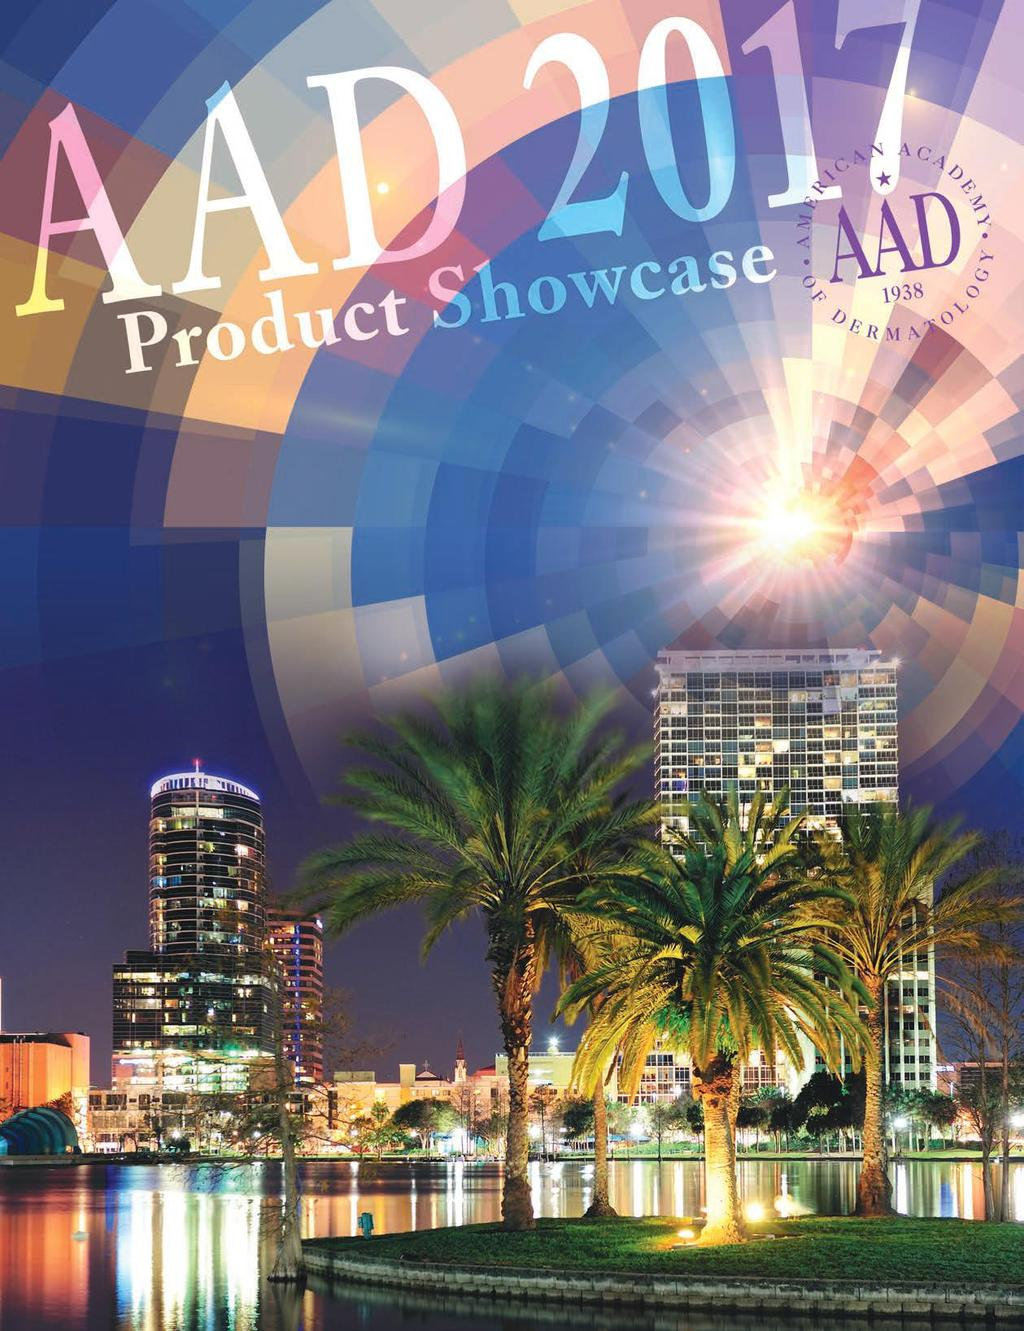 From March 3 7, 2017, the American Academy of Dermatology (AAD) will bring the best minds in this field together to create the most